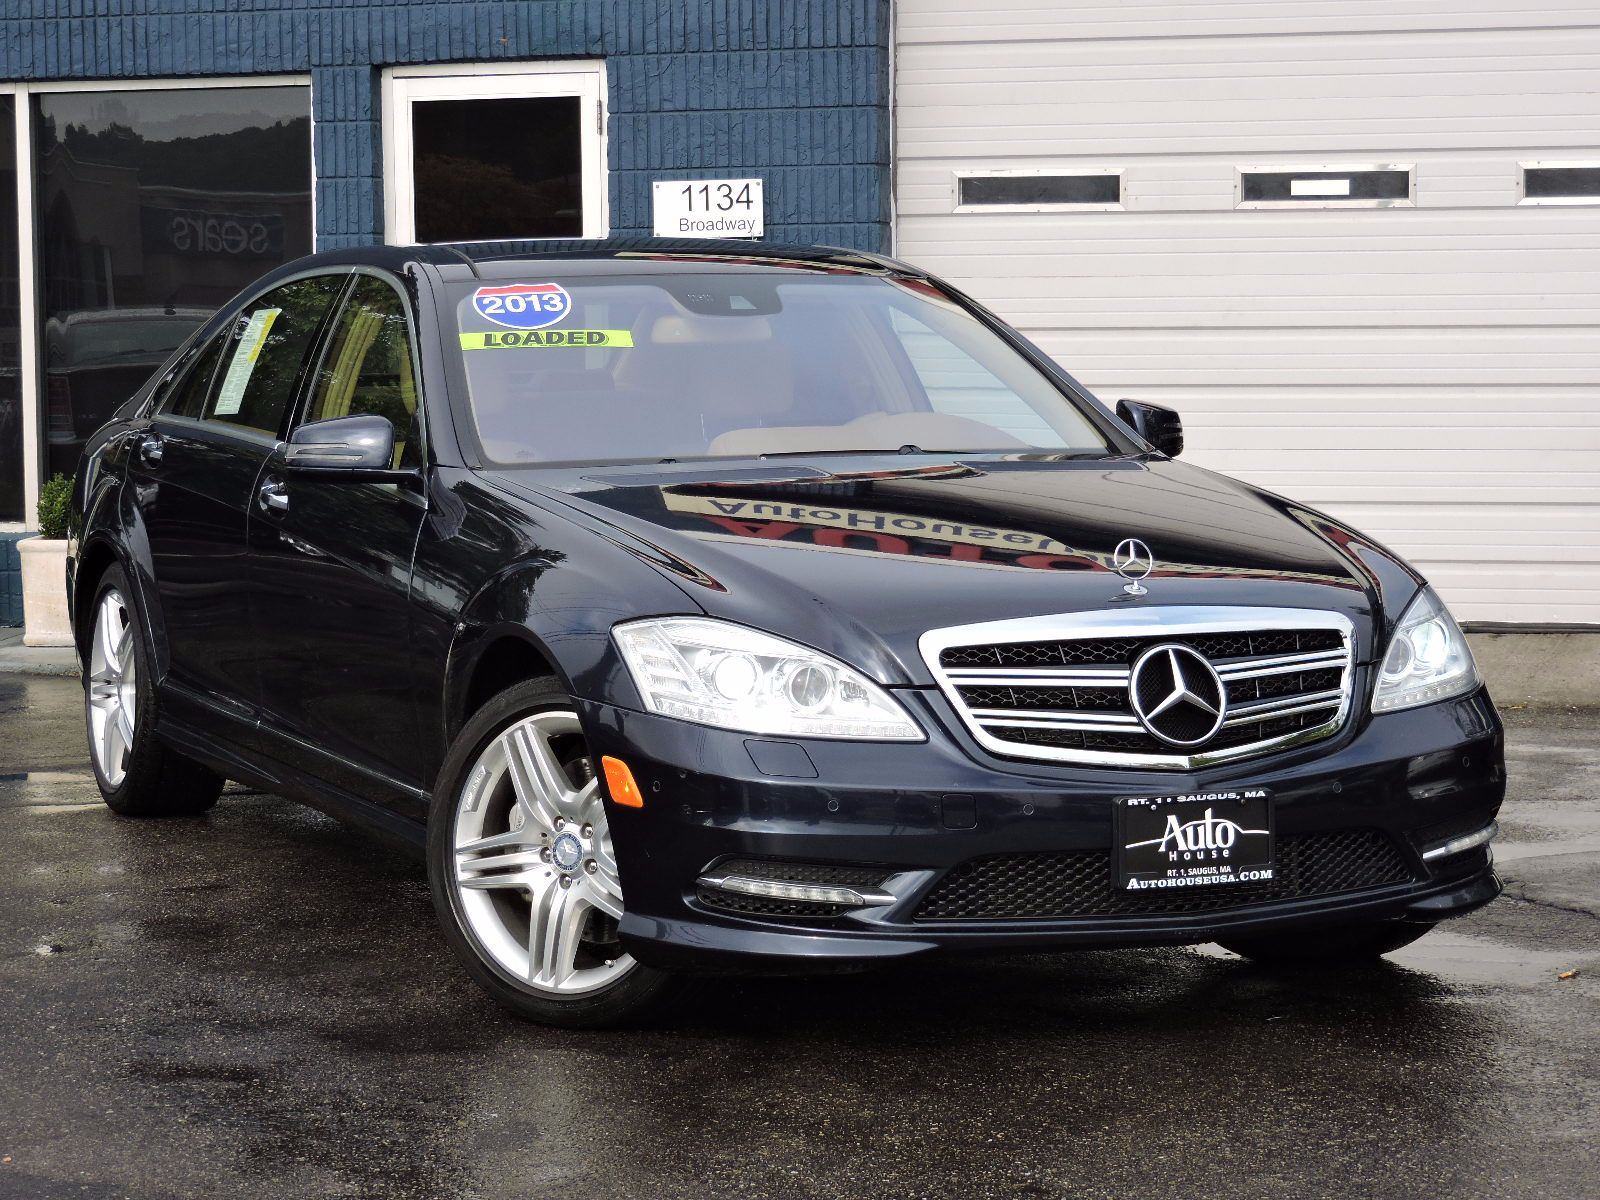 Used MercedesBenz S At Saugus Auto Mall - Mercedes benz auto mall